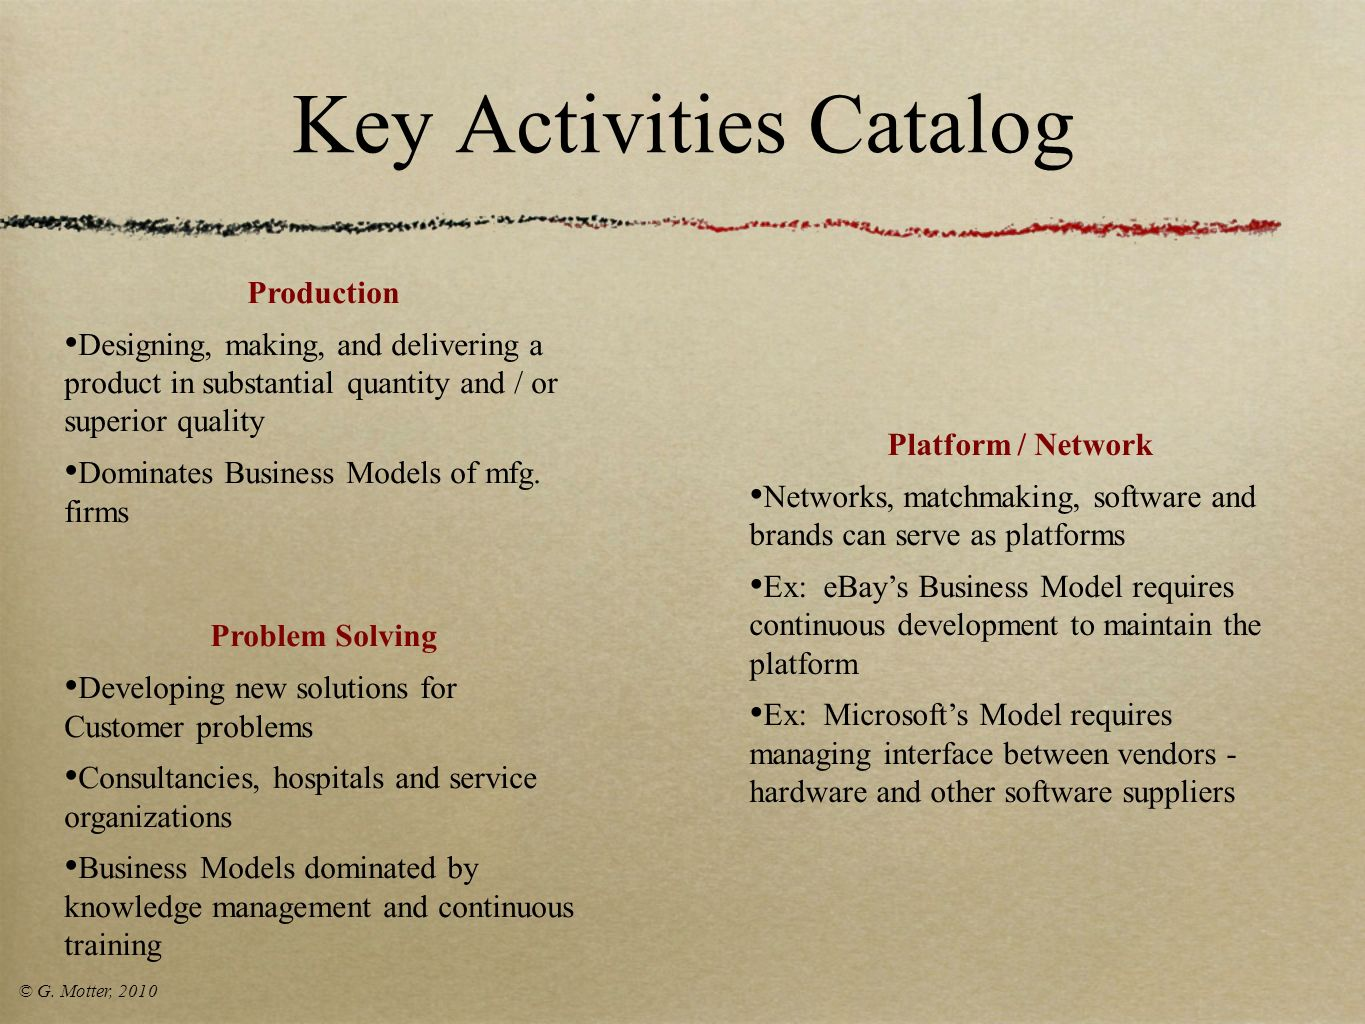 Key Activities Catalog